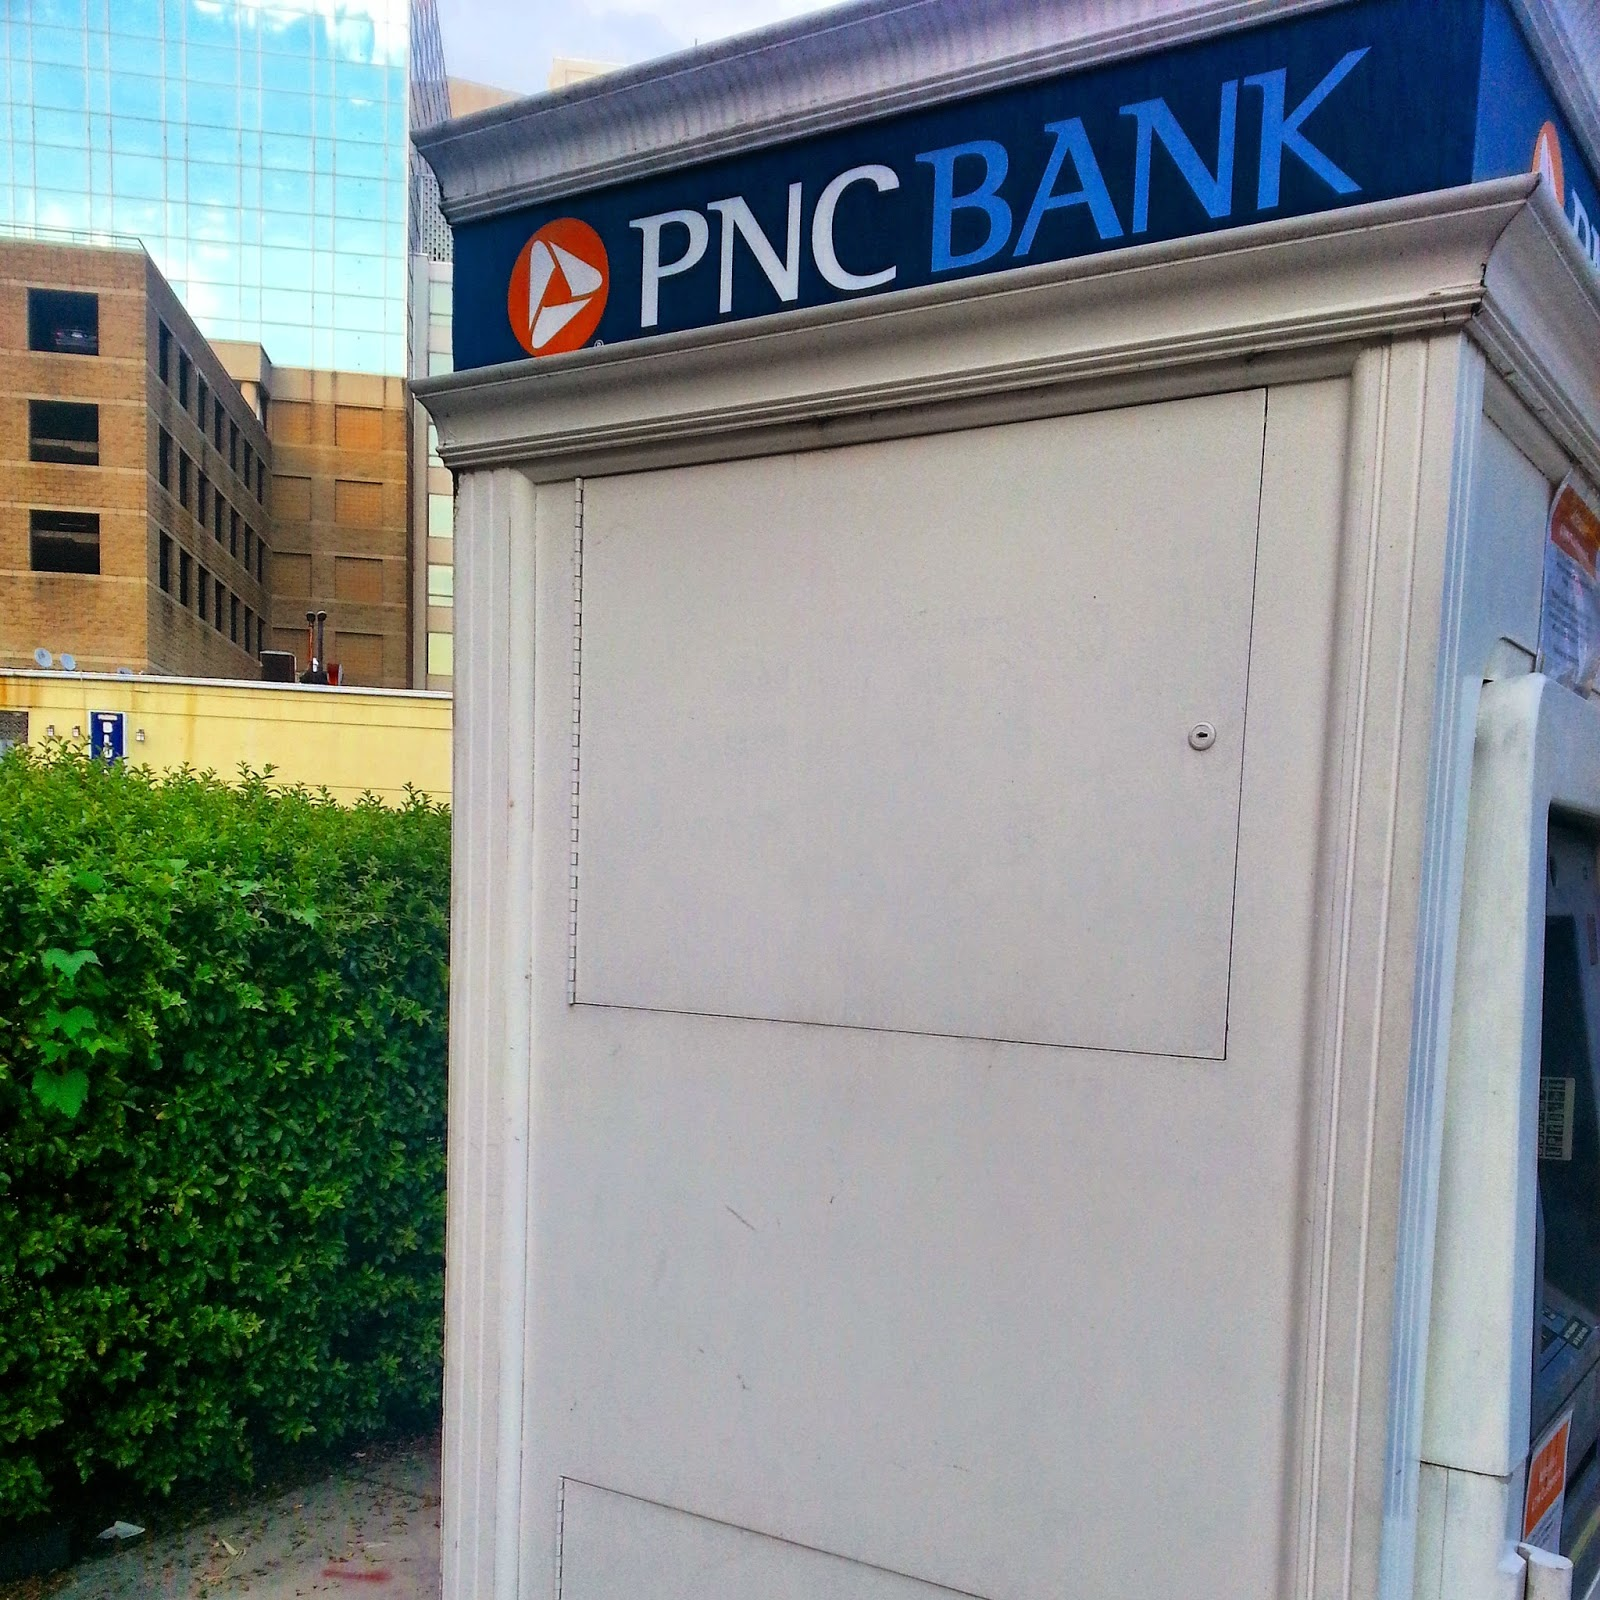 Robert Dyer @ Bethesda Row: PNC ATM TO BE REMOVED AT BETHESDA ROW IN